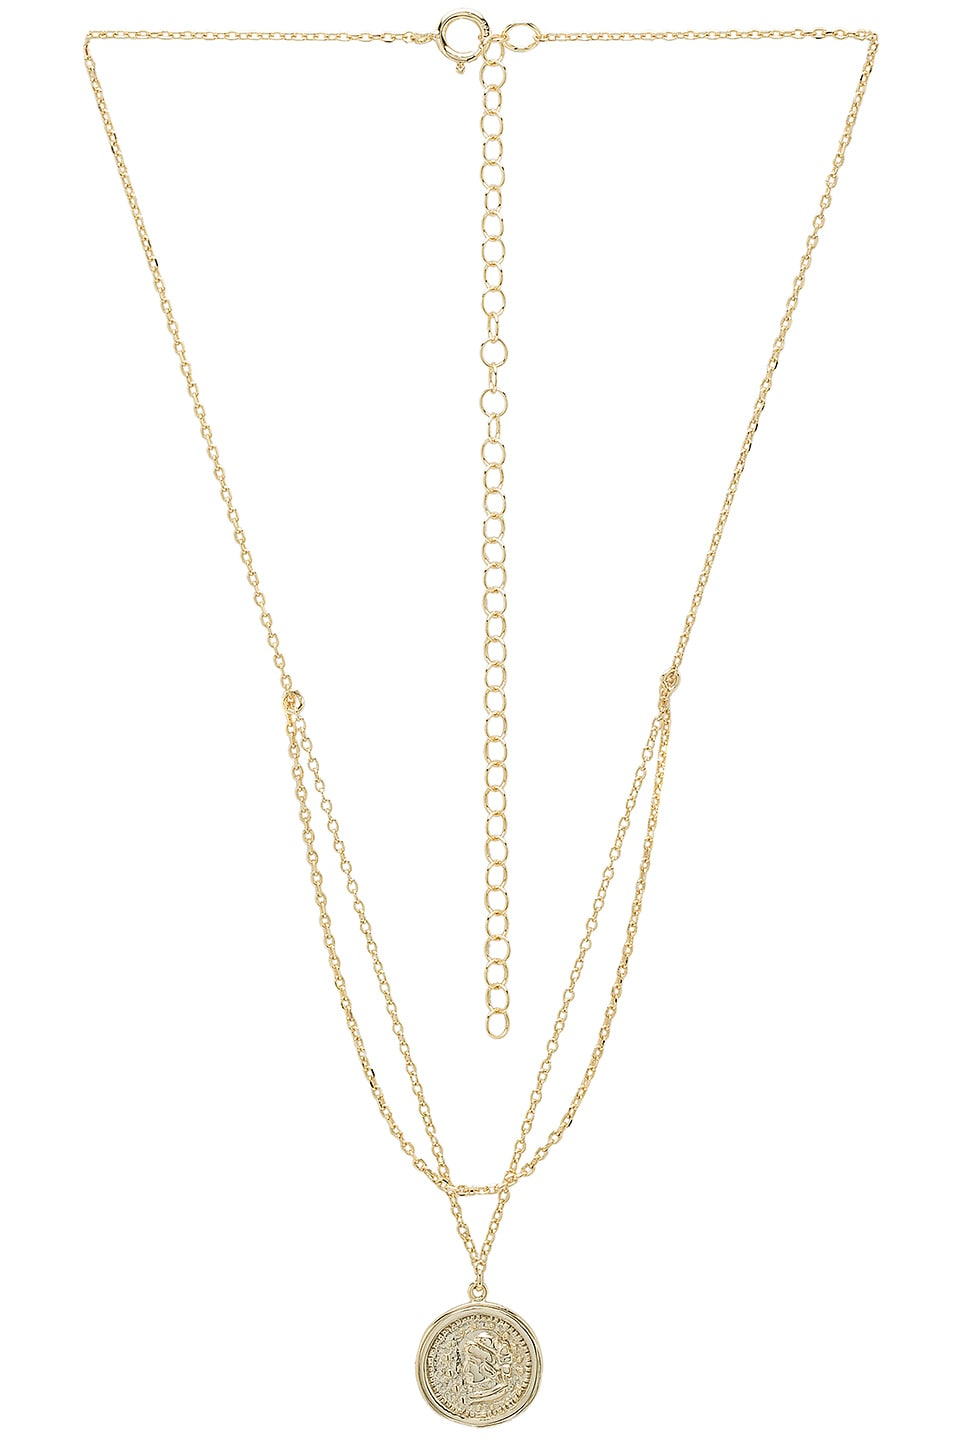 AMBER SCEATS ANIKA NECKLACE